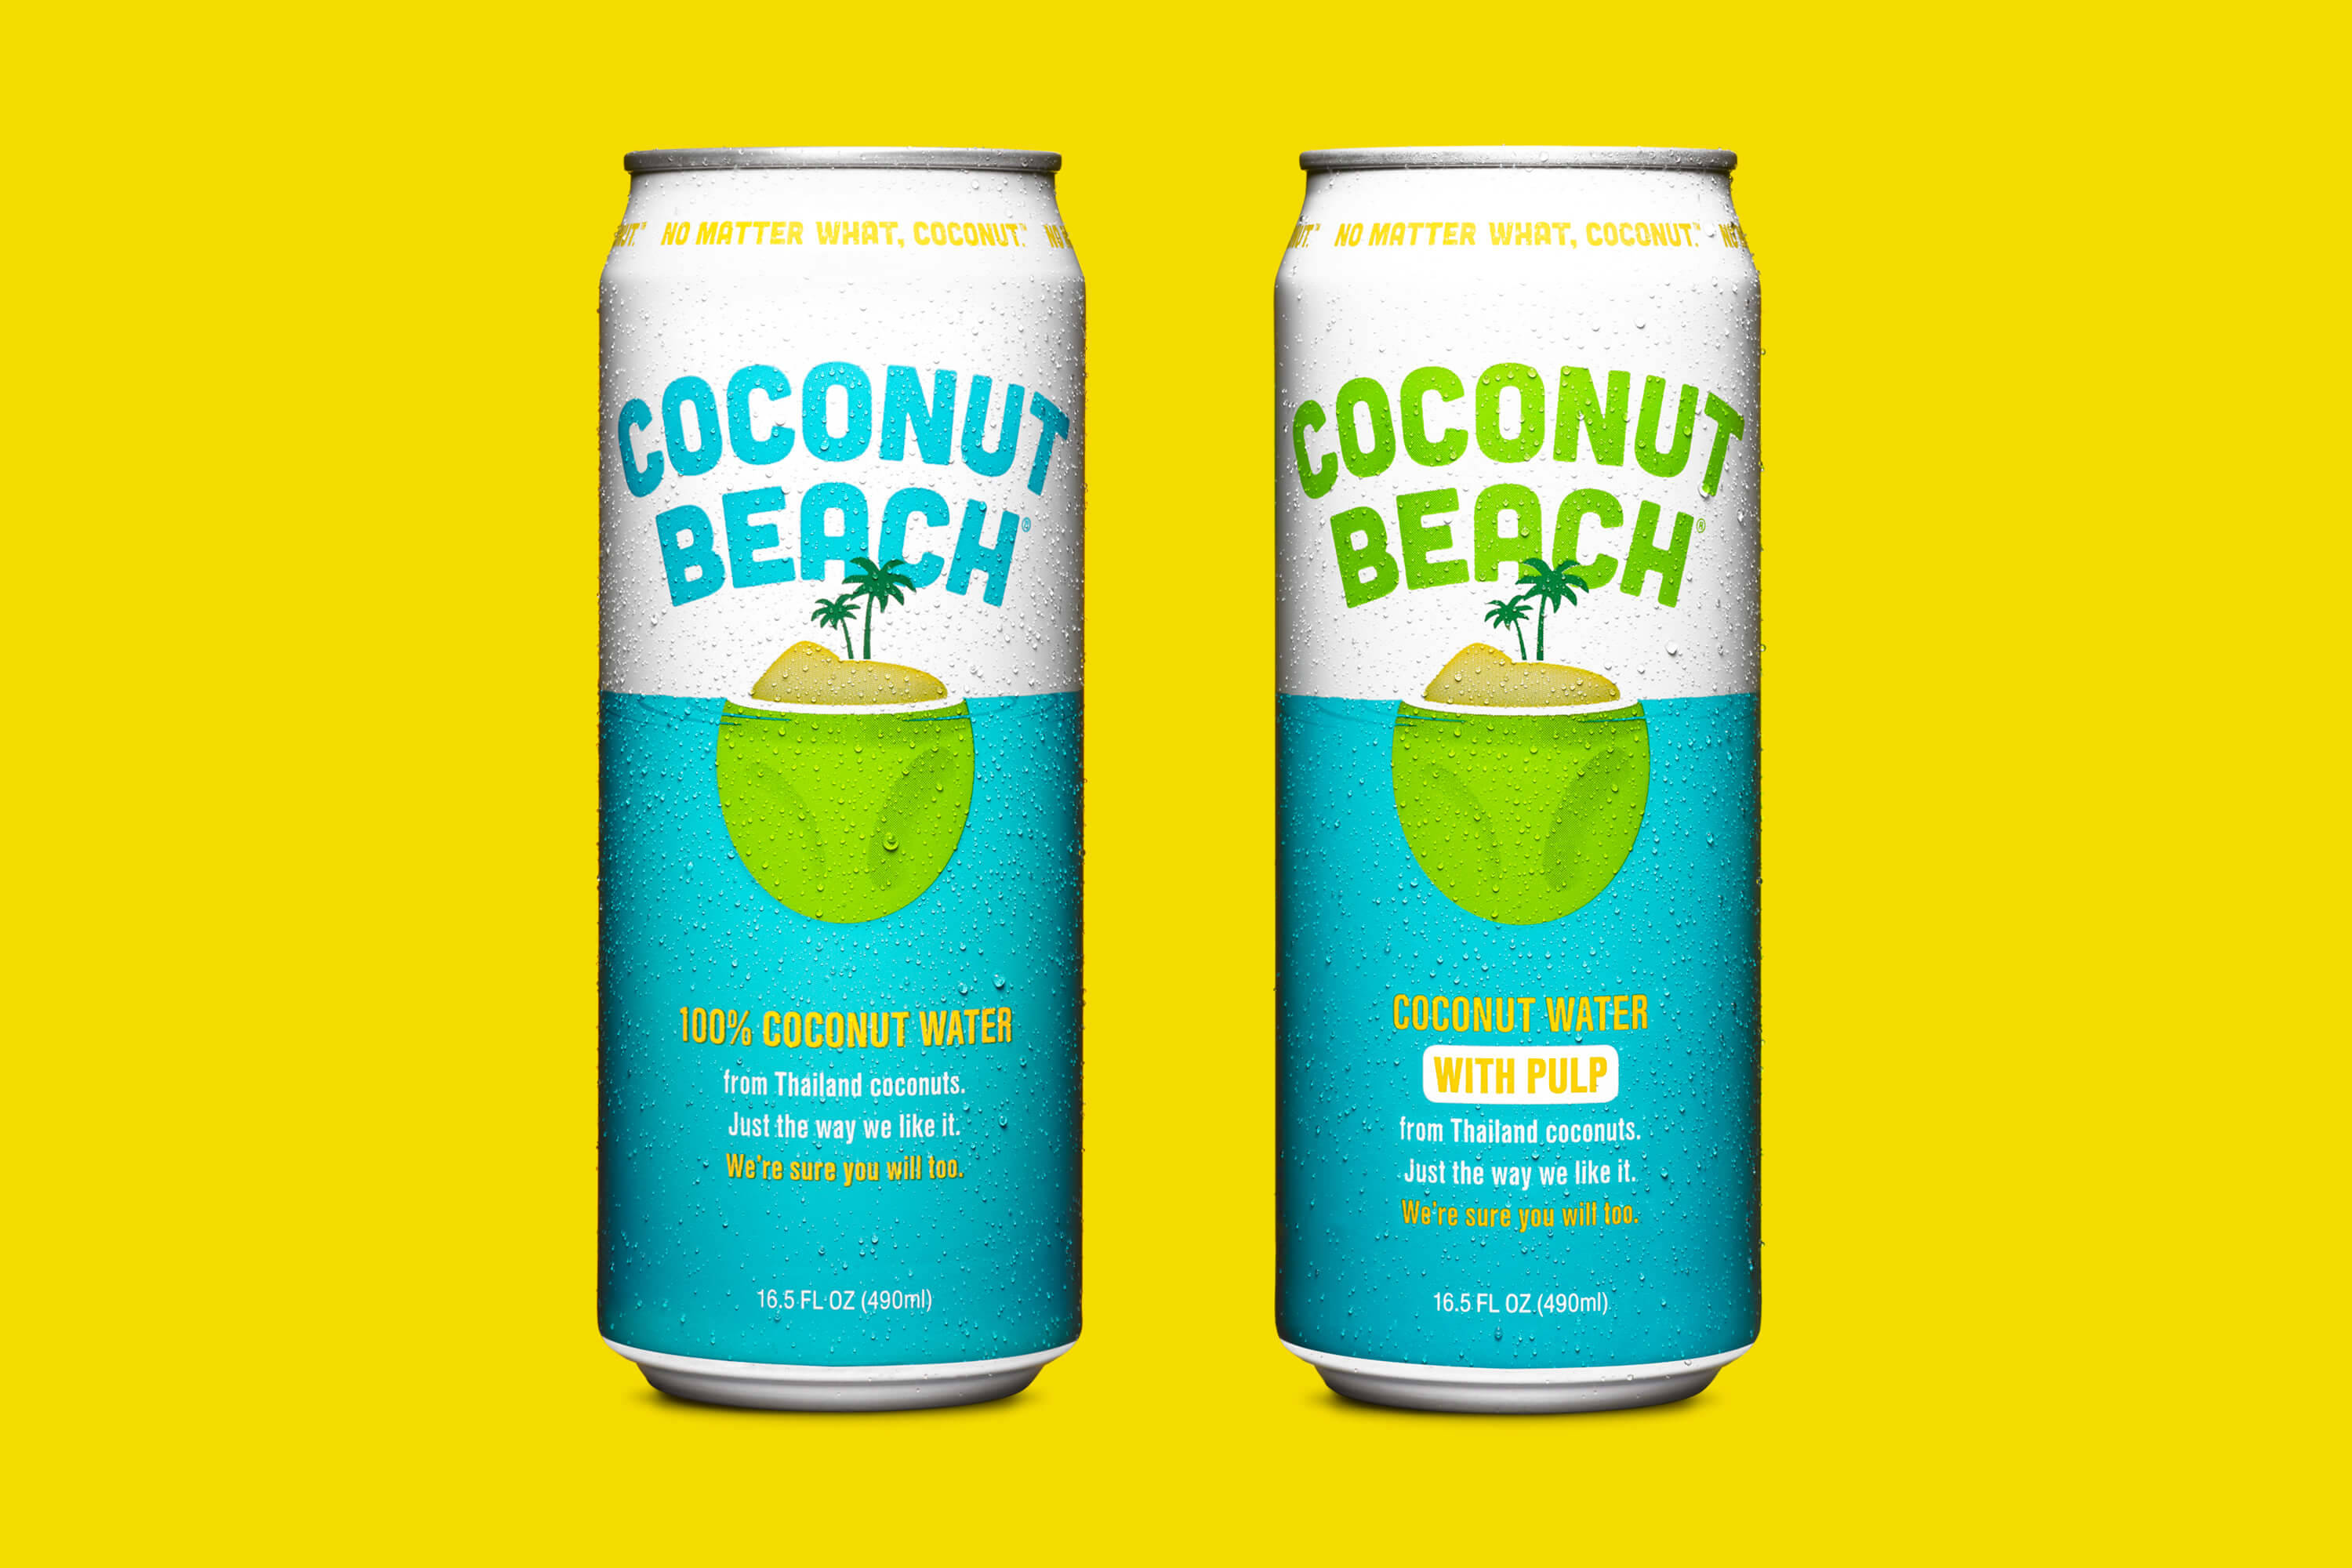 COCONUT-BEACH-CANS-UPDATE-2